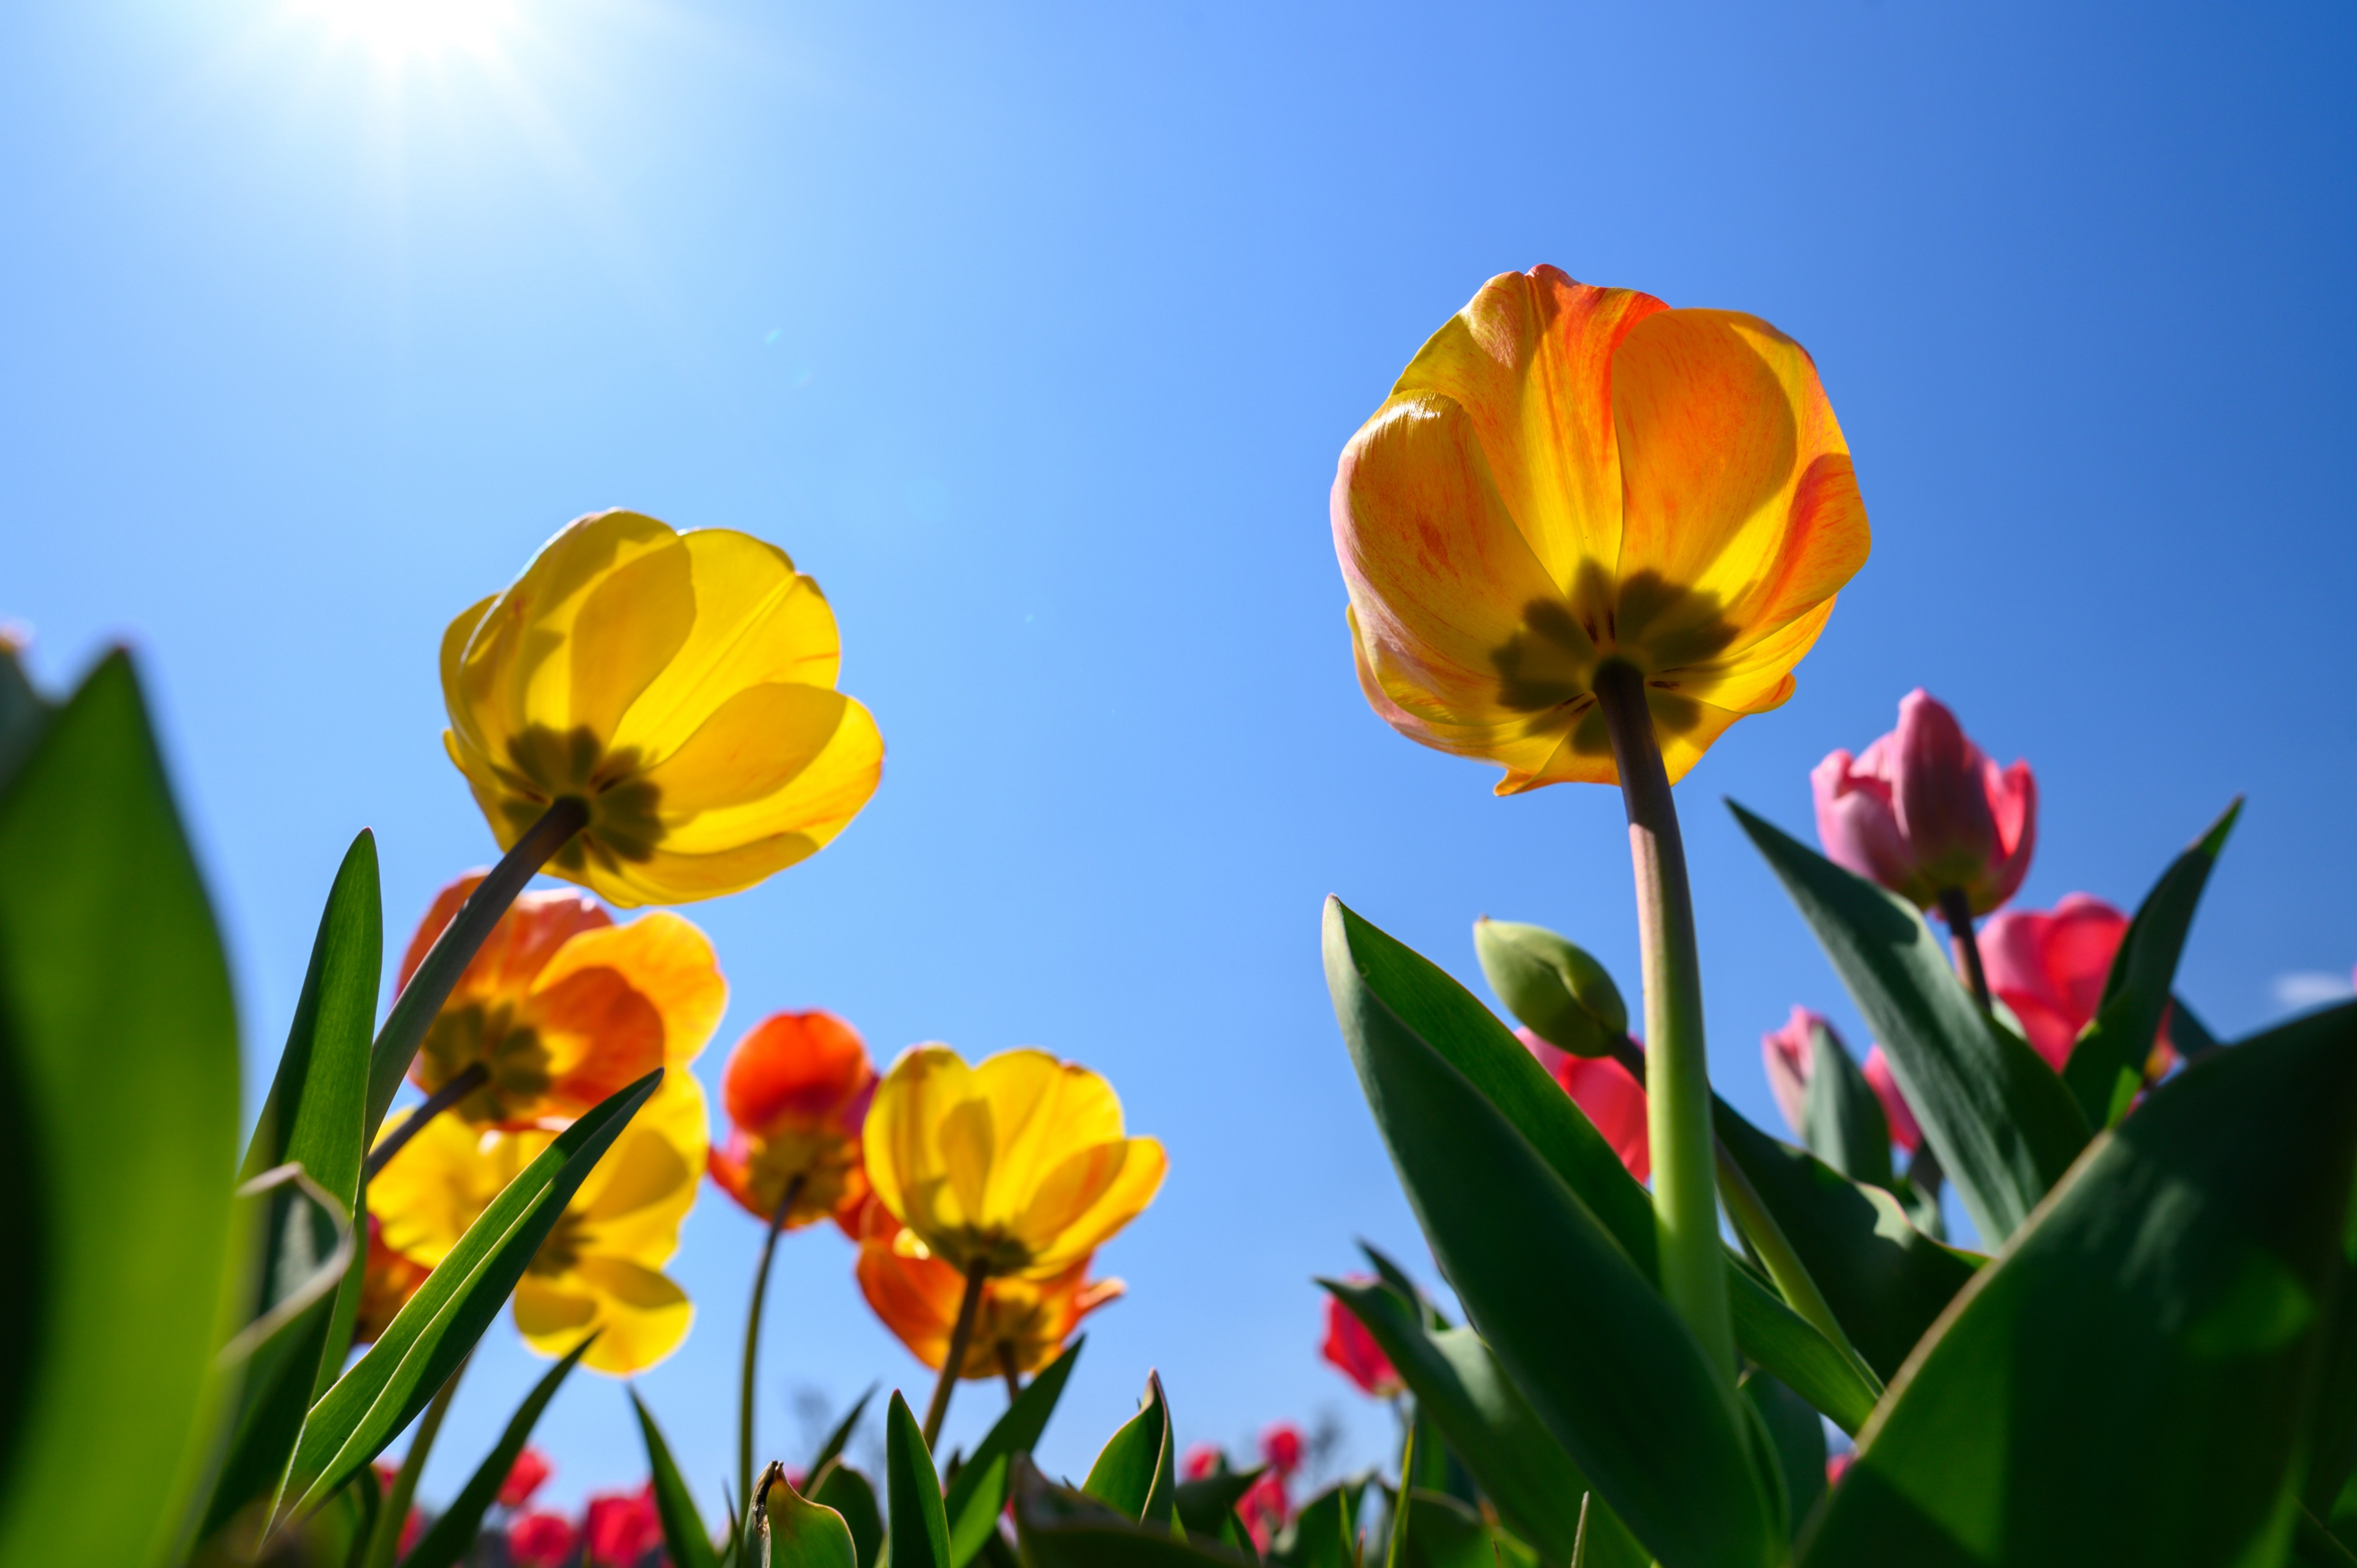 Red and yellow tulips face up yo a bright blue sky.